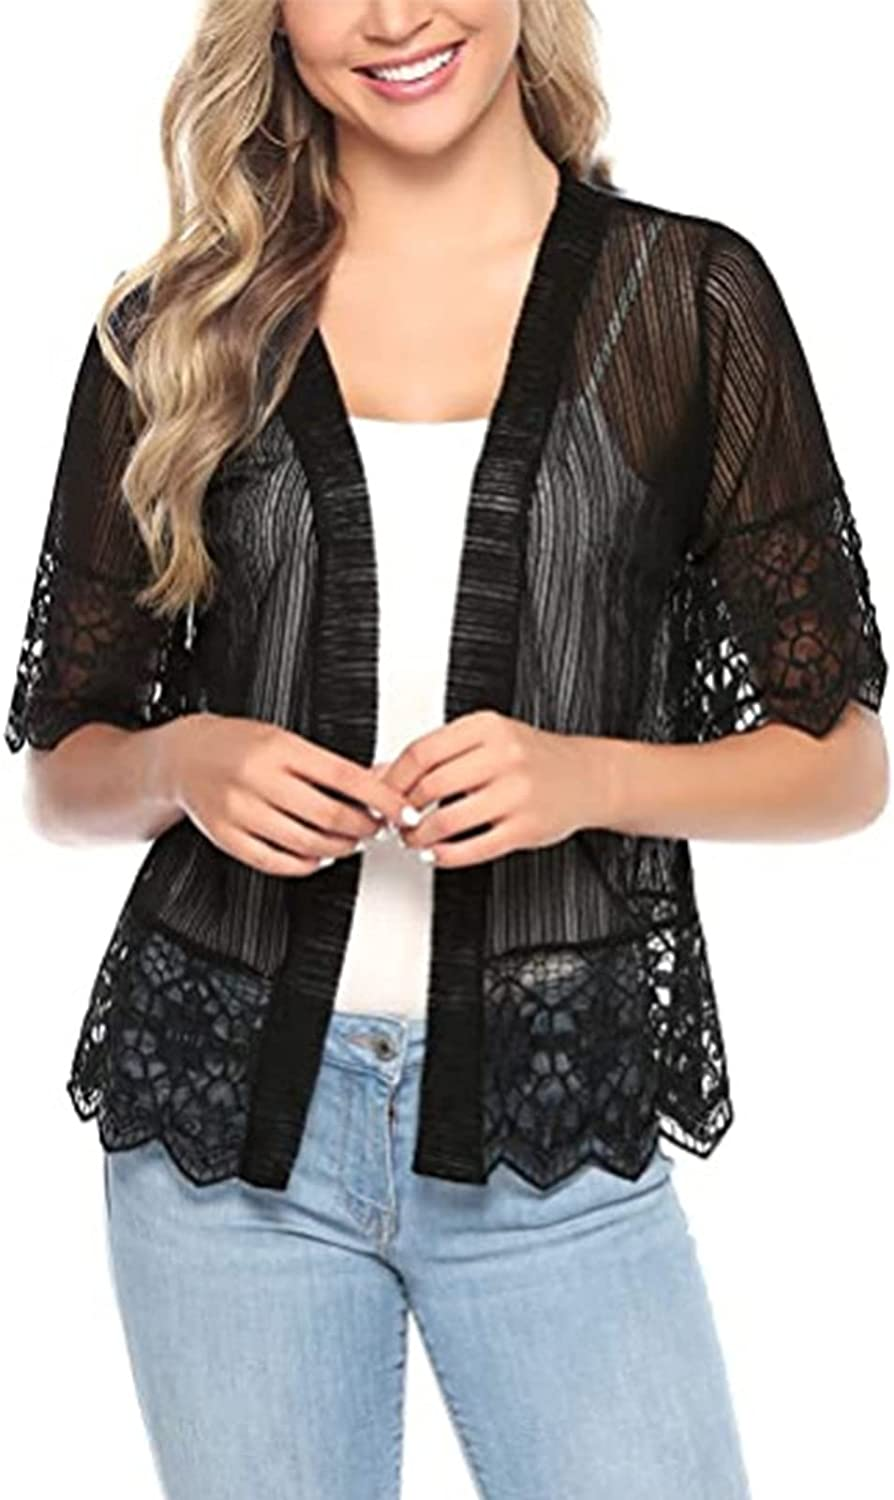 Women Casual Lace Sheer Shrug Crochet Cardigans Half Sleeve Open Front Cover Up Stripe Jacket Sweater